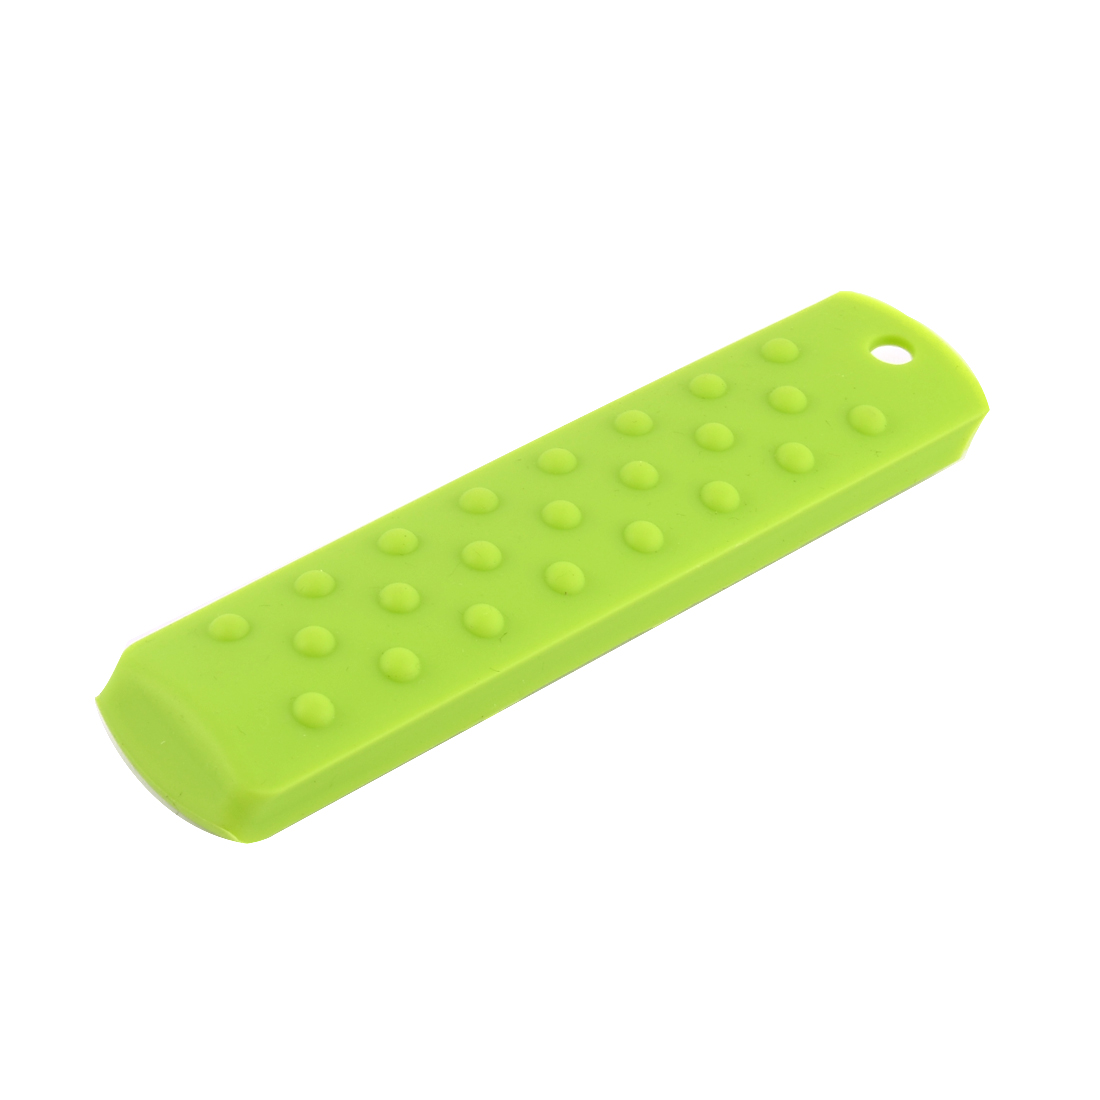 UXCELL Kitchen Silicone Heat Resistant Pot Pan Handle Saucepan Grip Holder Sleeve Slip Cover Green cover | handle | pot